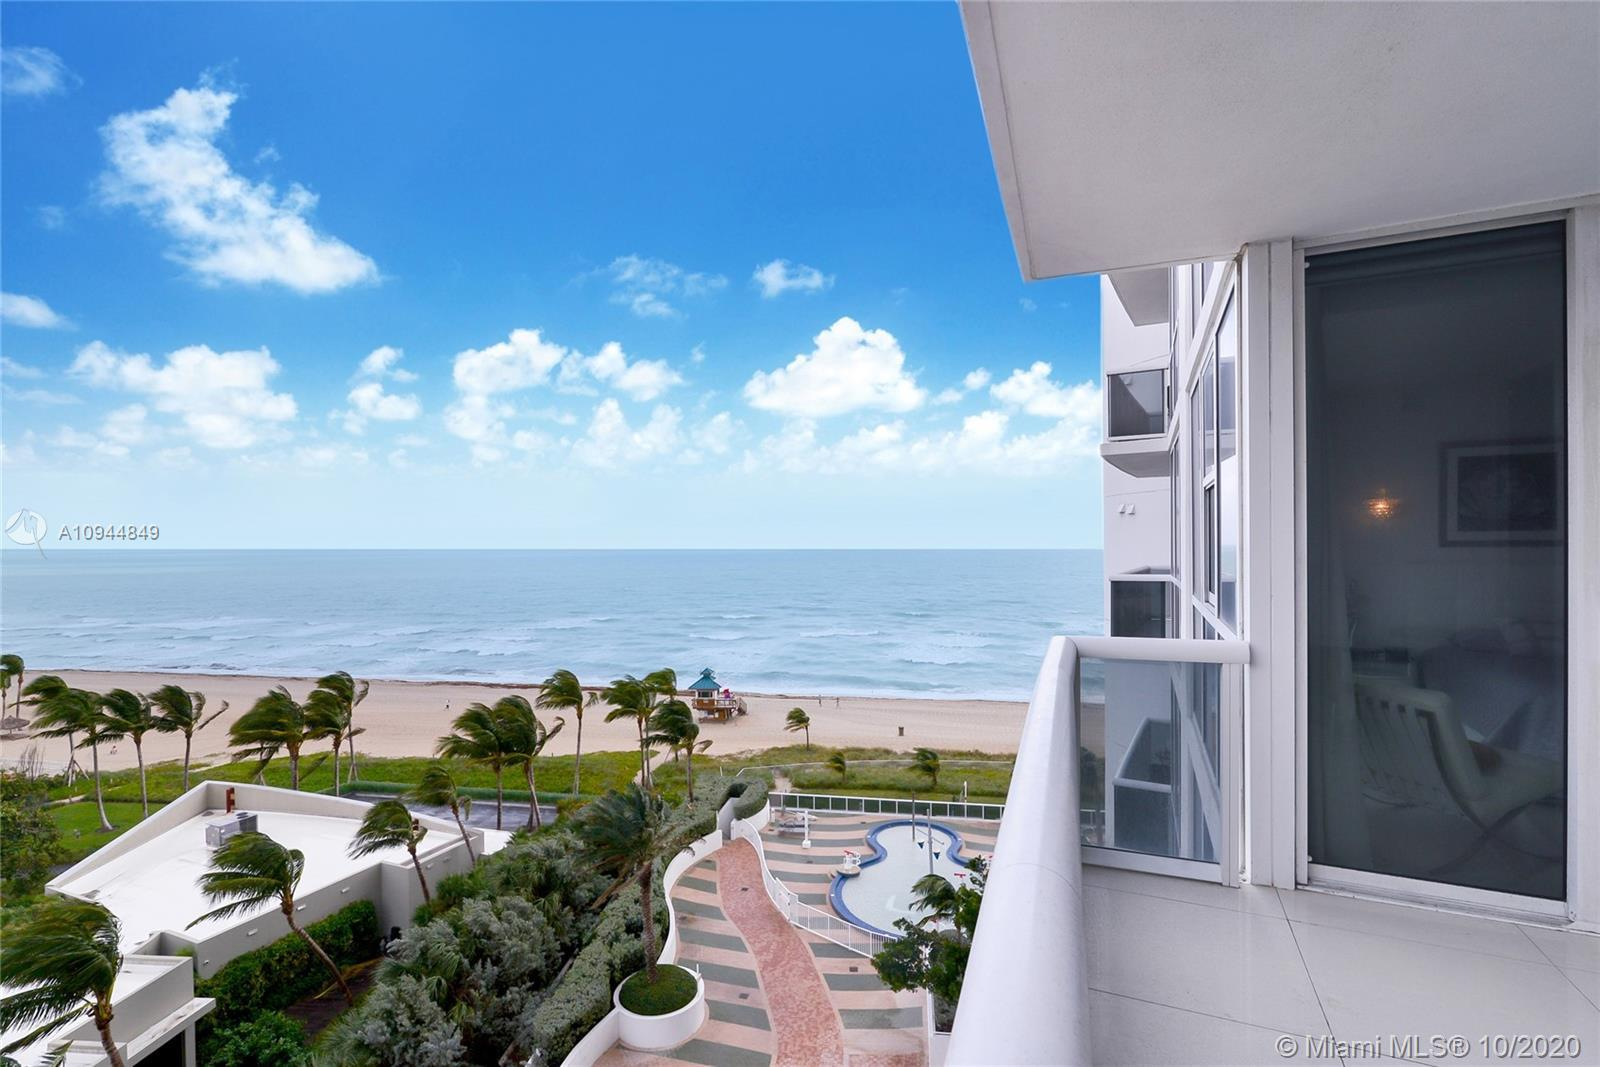 """Priced to sell! Amazing 2-bedroom condo with Northeast views of the ocean in the prestigious Trump"